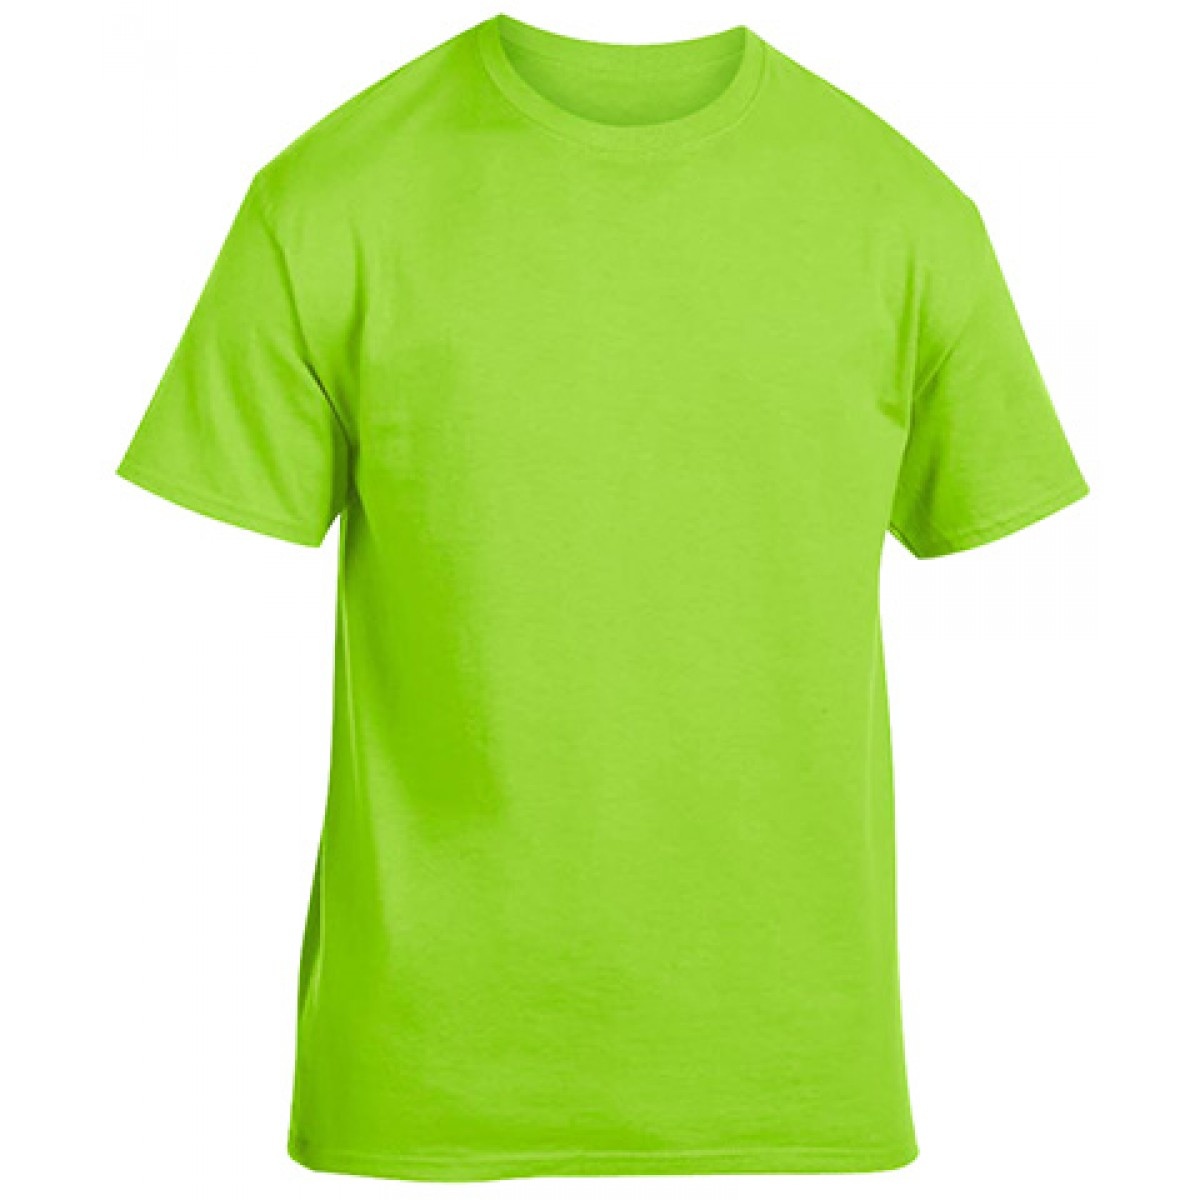 Soft 100% Cotton T-Shirt-Lime Green-S